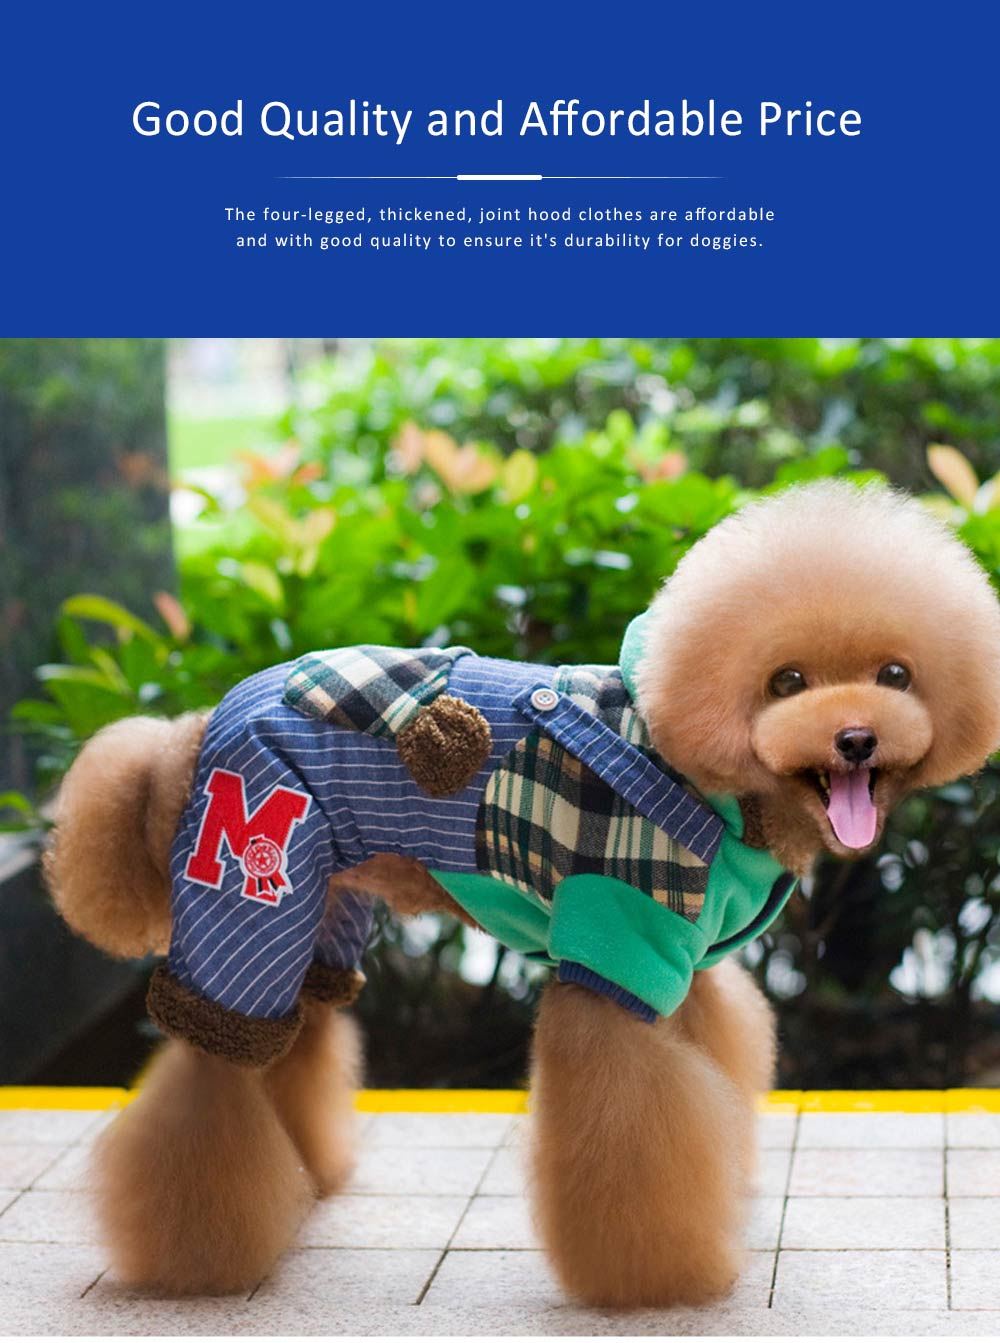 Thickened, Joint, Four-legged Dog Hood Clothes for Teddy Dog Clothes New Style EXW Wholesale Teddy Clothes 2